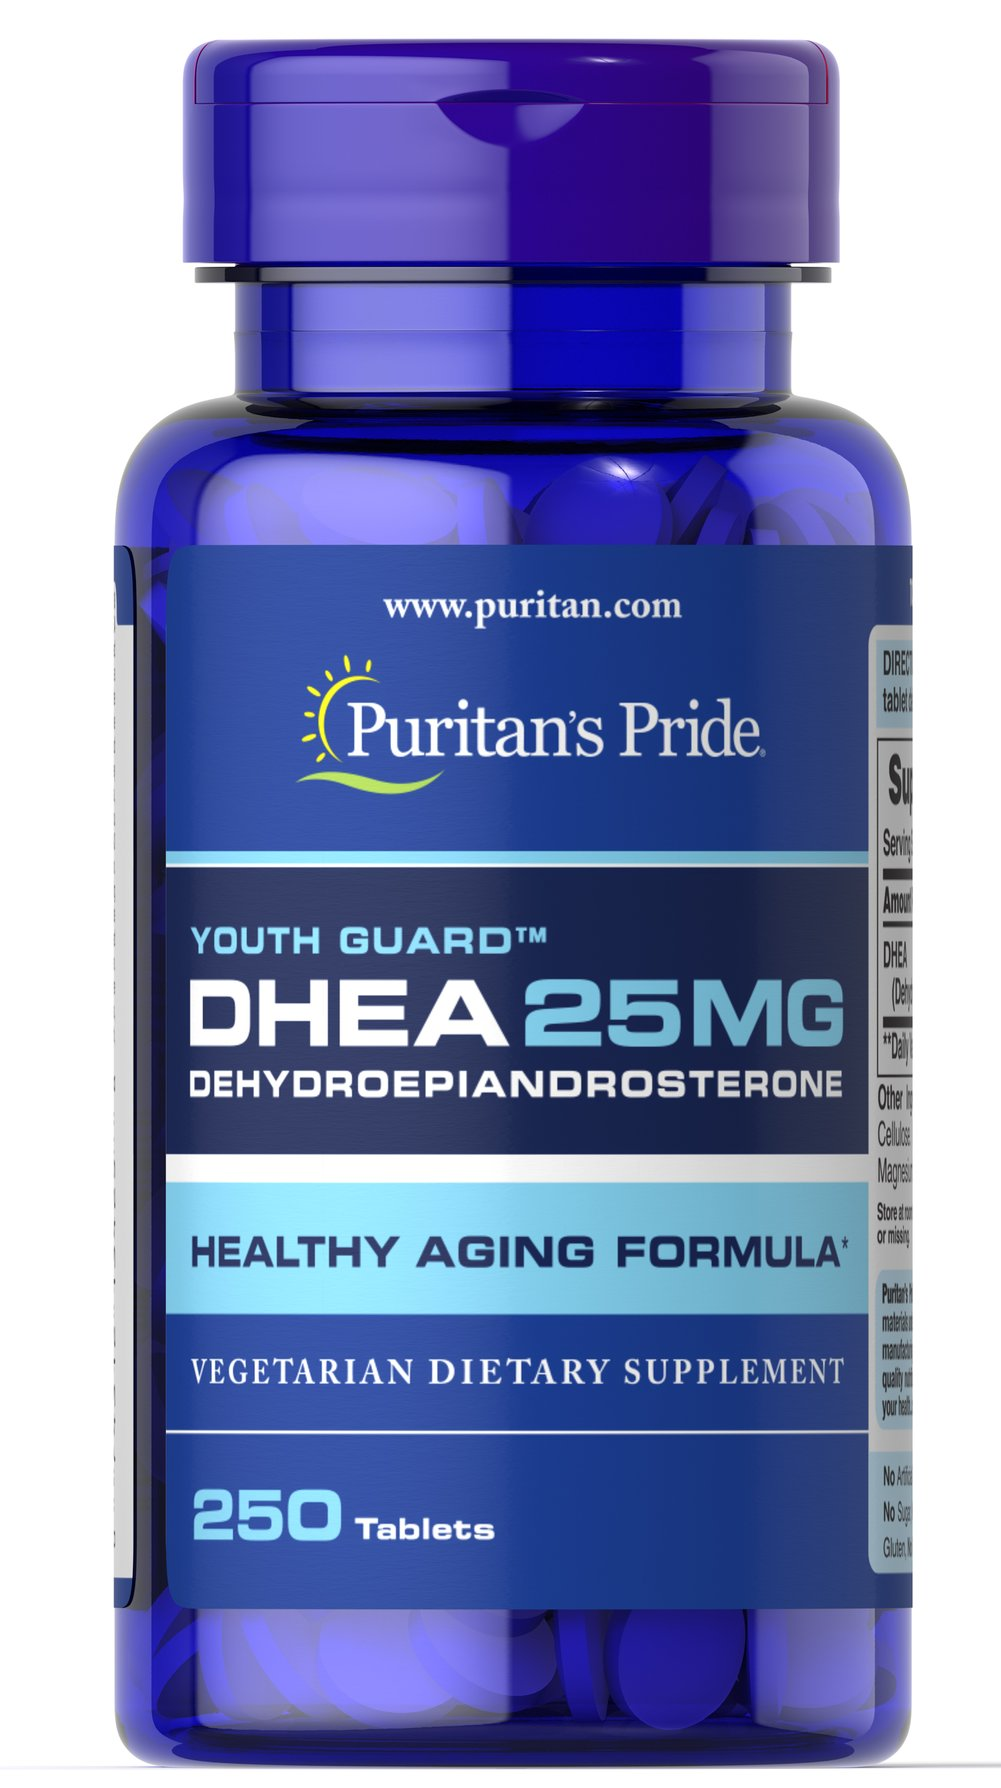 DHEA 25 mg <p>DHEA (Dehydroepiandrosterone) is made by the adrenal glands, which are located just above the kidneys and liver.  Levels of DHEA can decline with age.  Adults can take one tablet daily with a meal.</p> 250 Tablets 25 mg $24.99